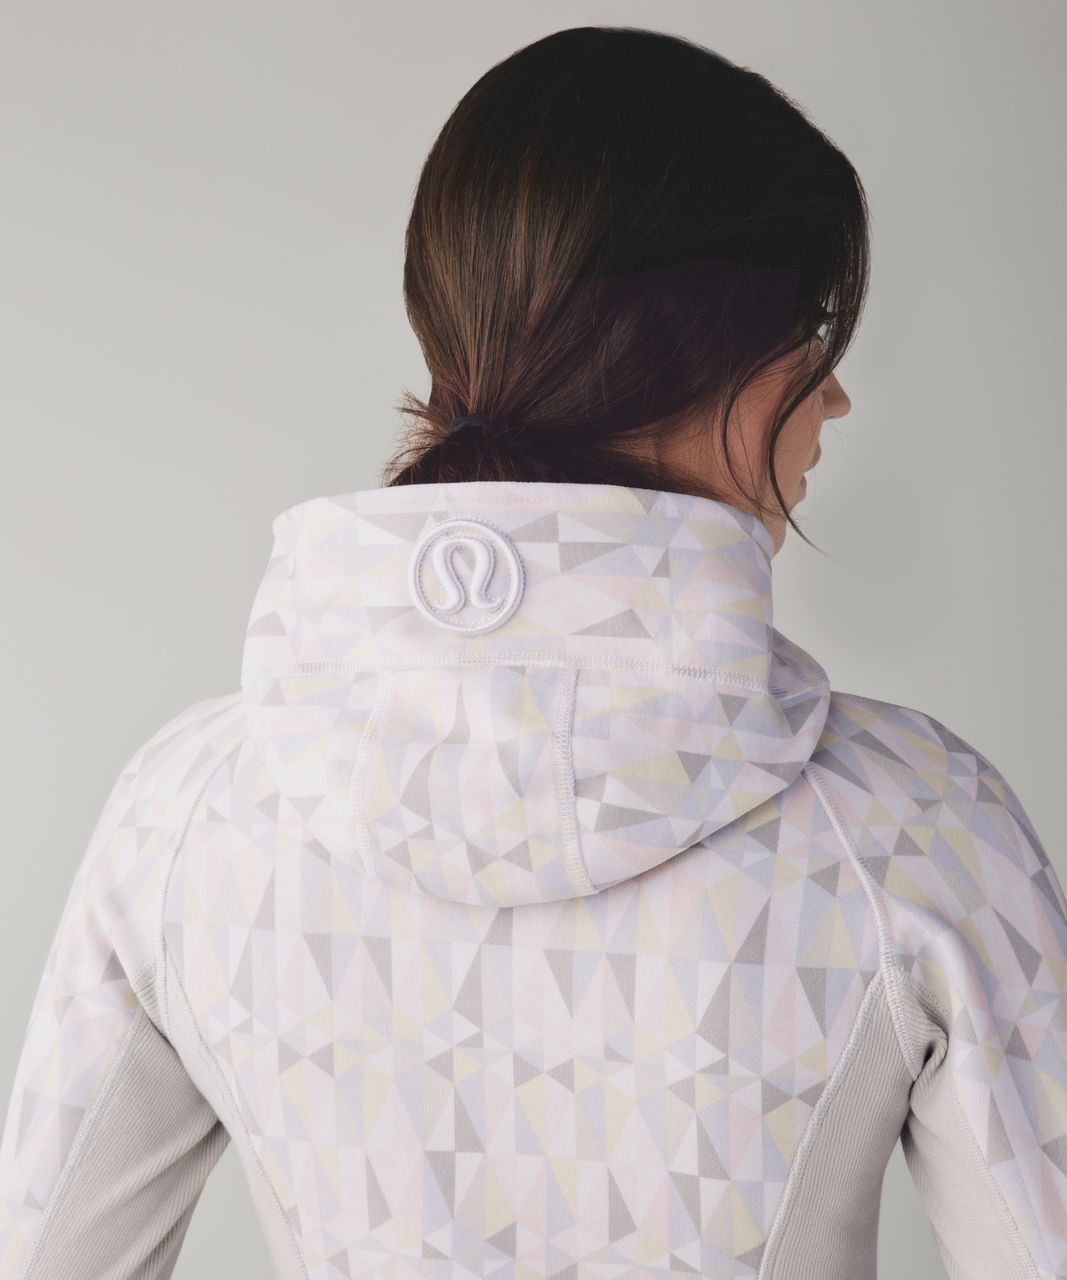 Lululemon Scuba Hoodie II - Stained Glass Love White Neutral Blush / Whisper Pink / Nimbus